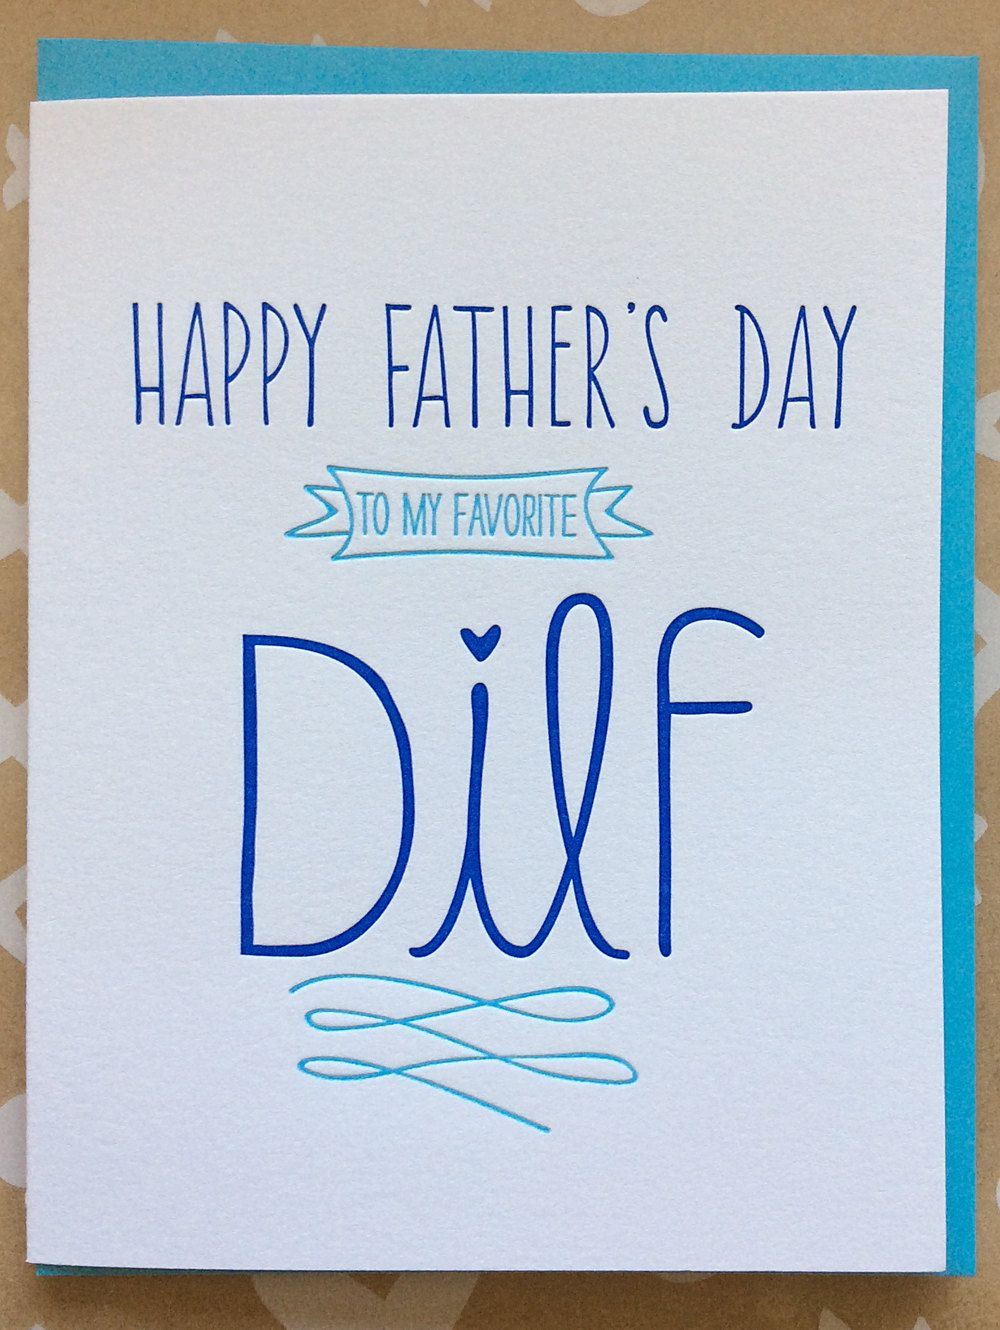 Fathers Day Card From Wife Funny Father S Day Card For Etsy Naughty Valentines Funny Valentine Cards For Boyfriend